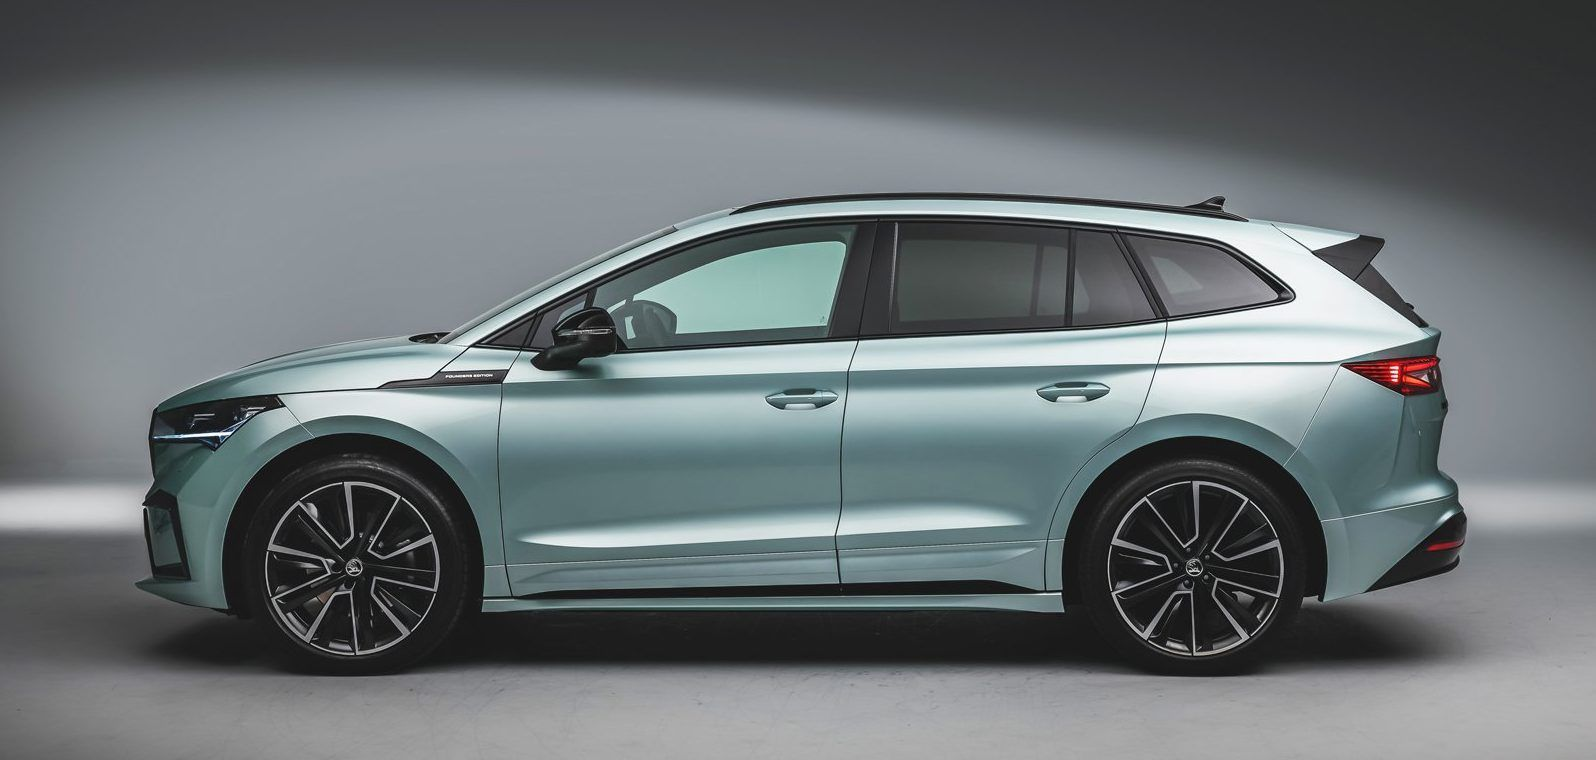 2021 Electric Skoda Enyaq Iv Costs Facts And Figures Hotcars